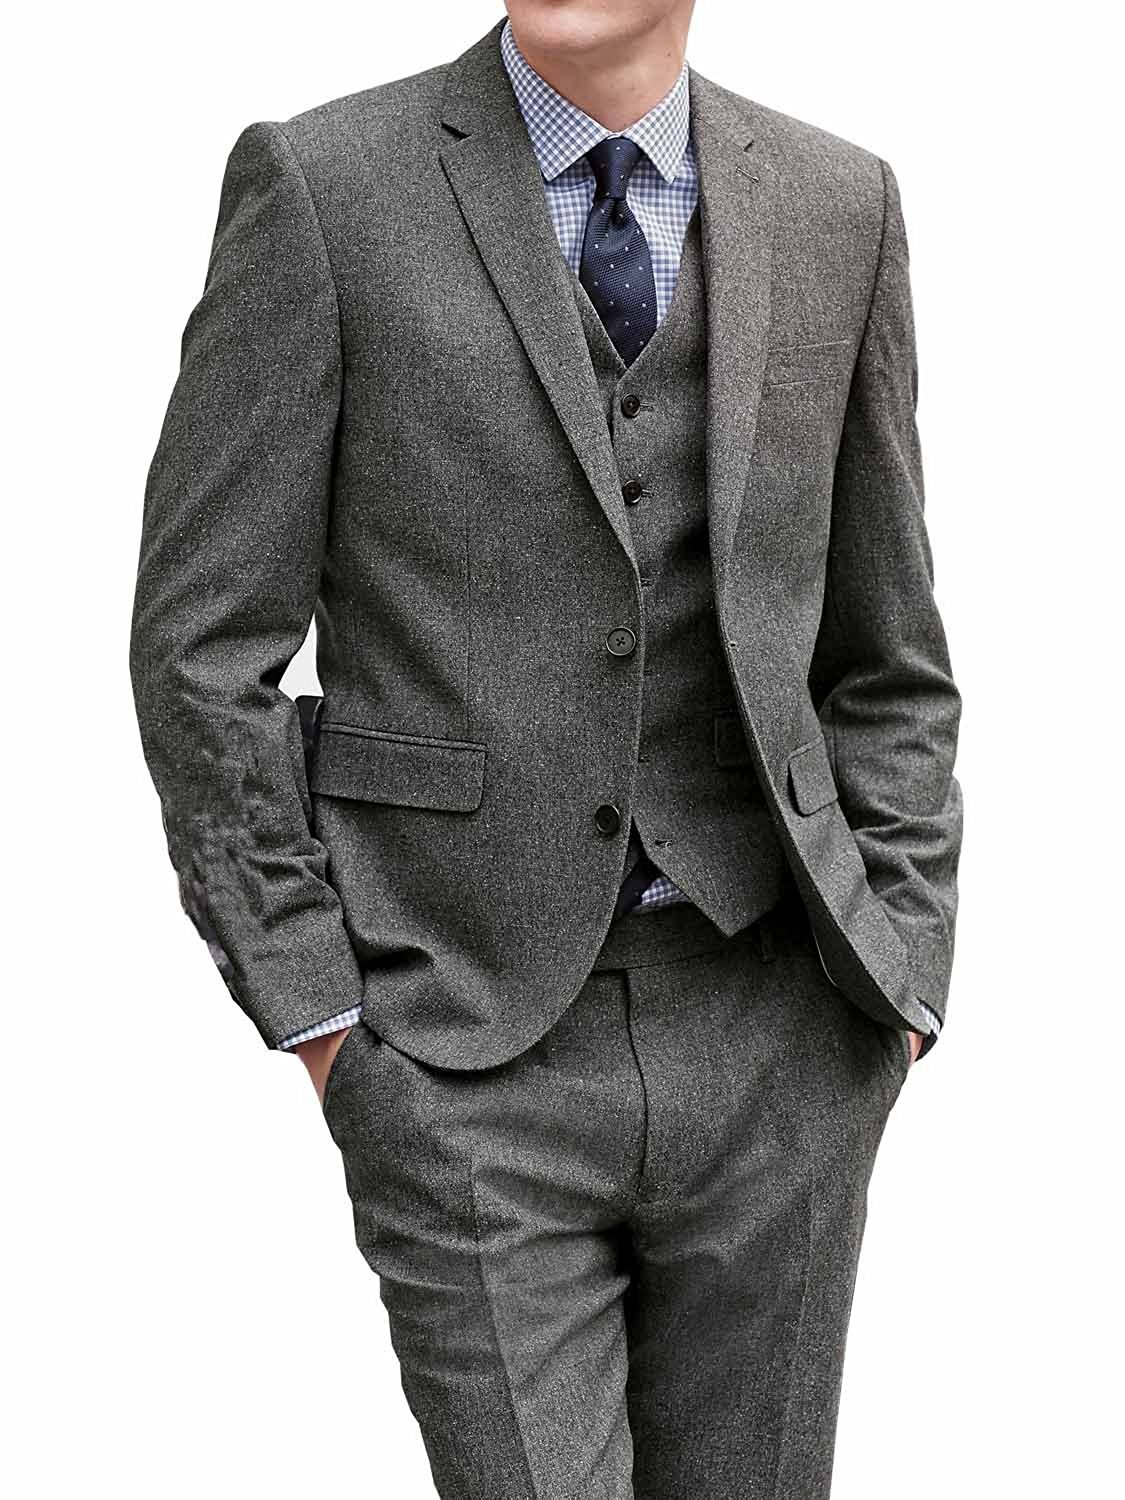 Pretydress Grey Men's Double Breasted Mature 3-Piece Suit (Grey, X-Large)